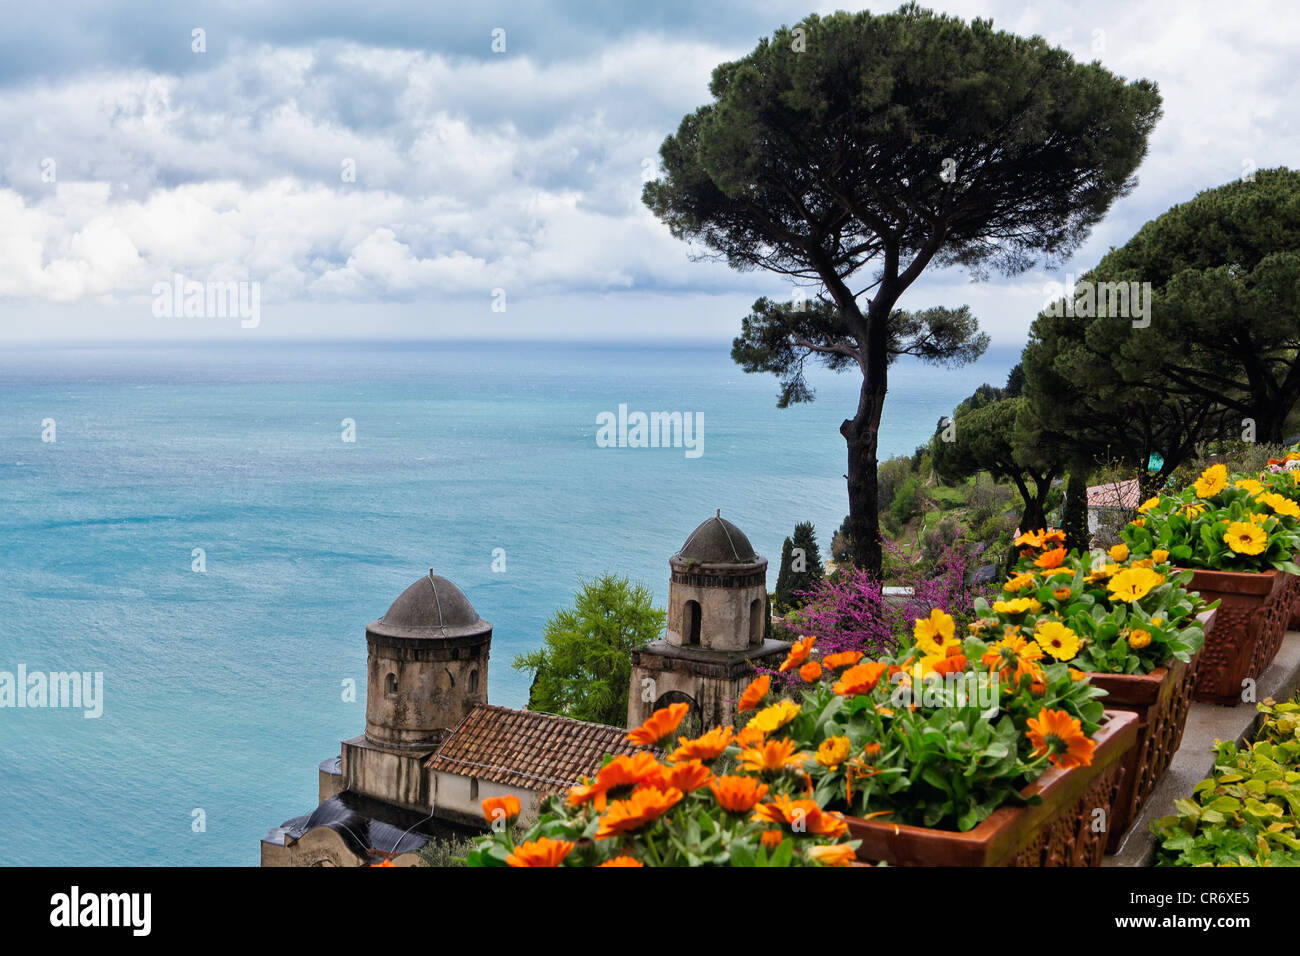 High Angle View from Villa Rufulo, Ravello, Campania, Italy - Stock Image